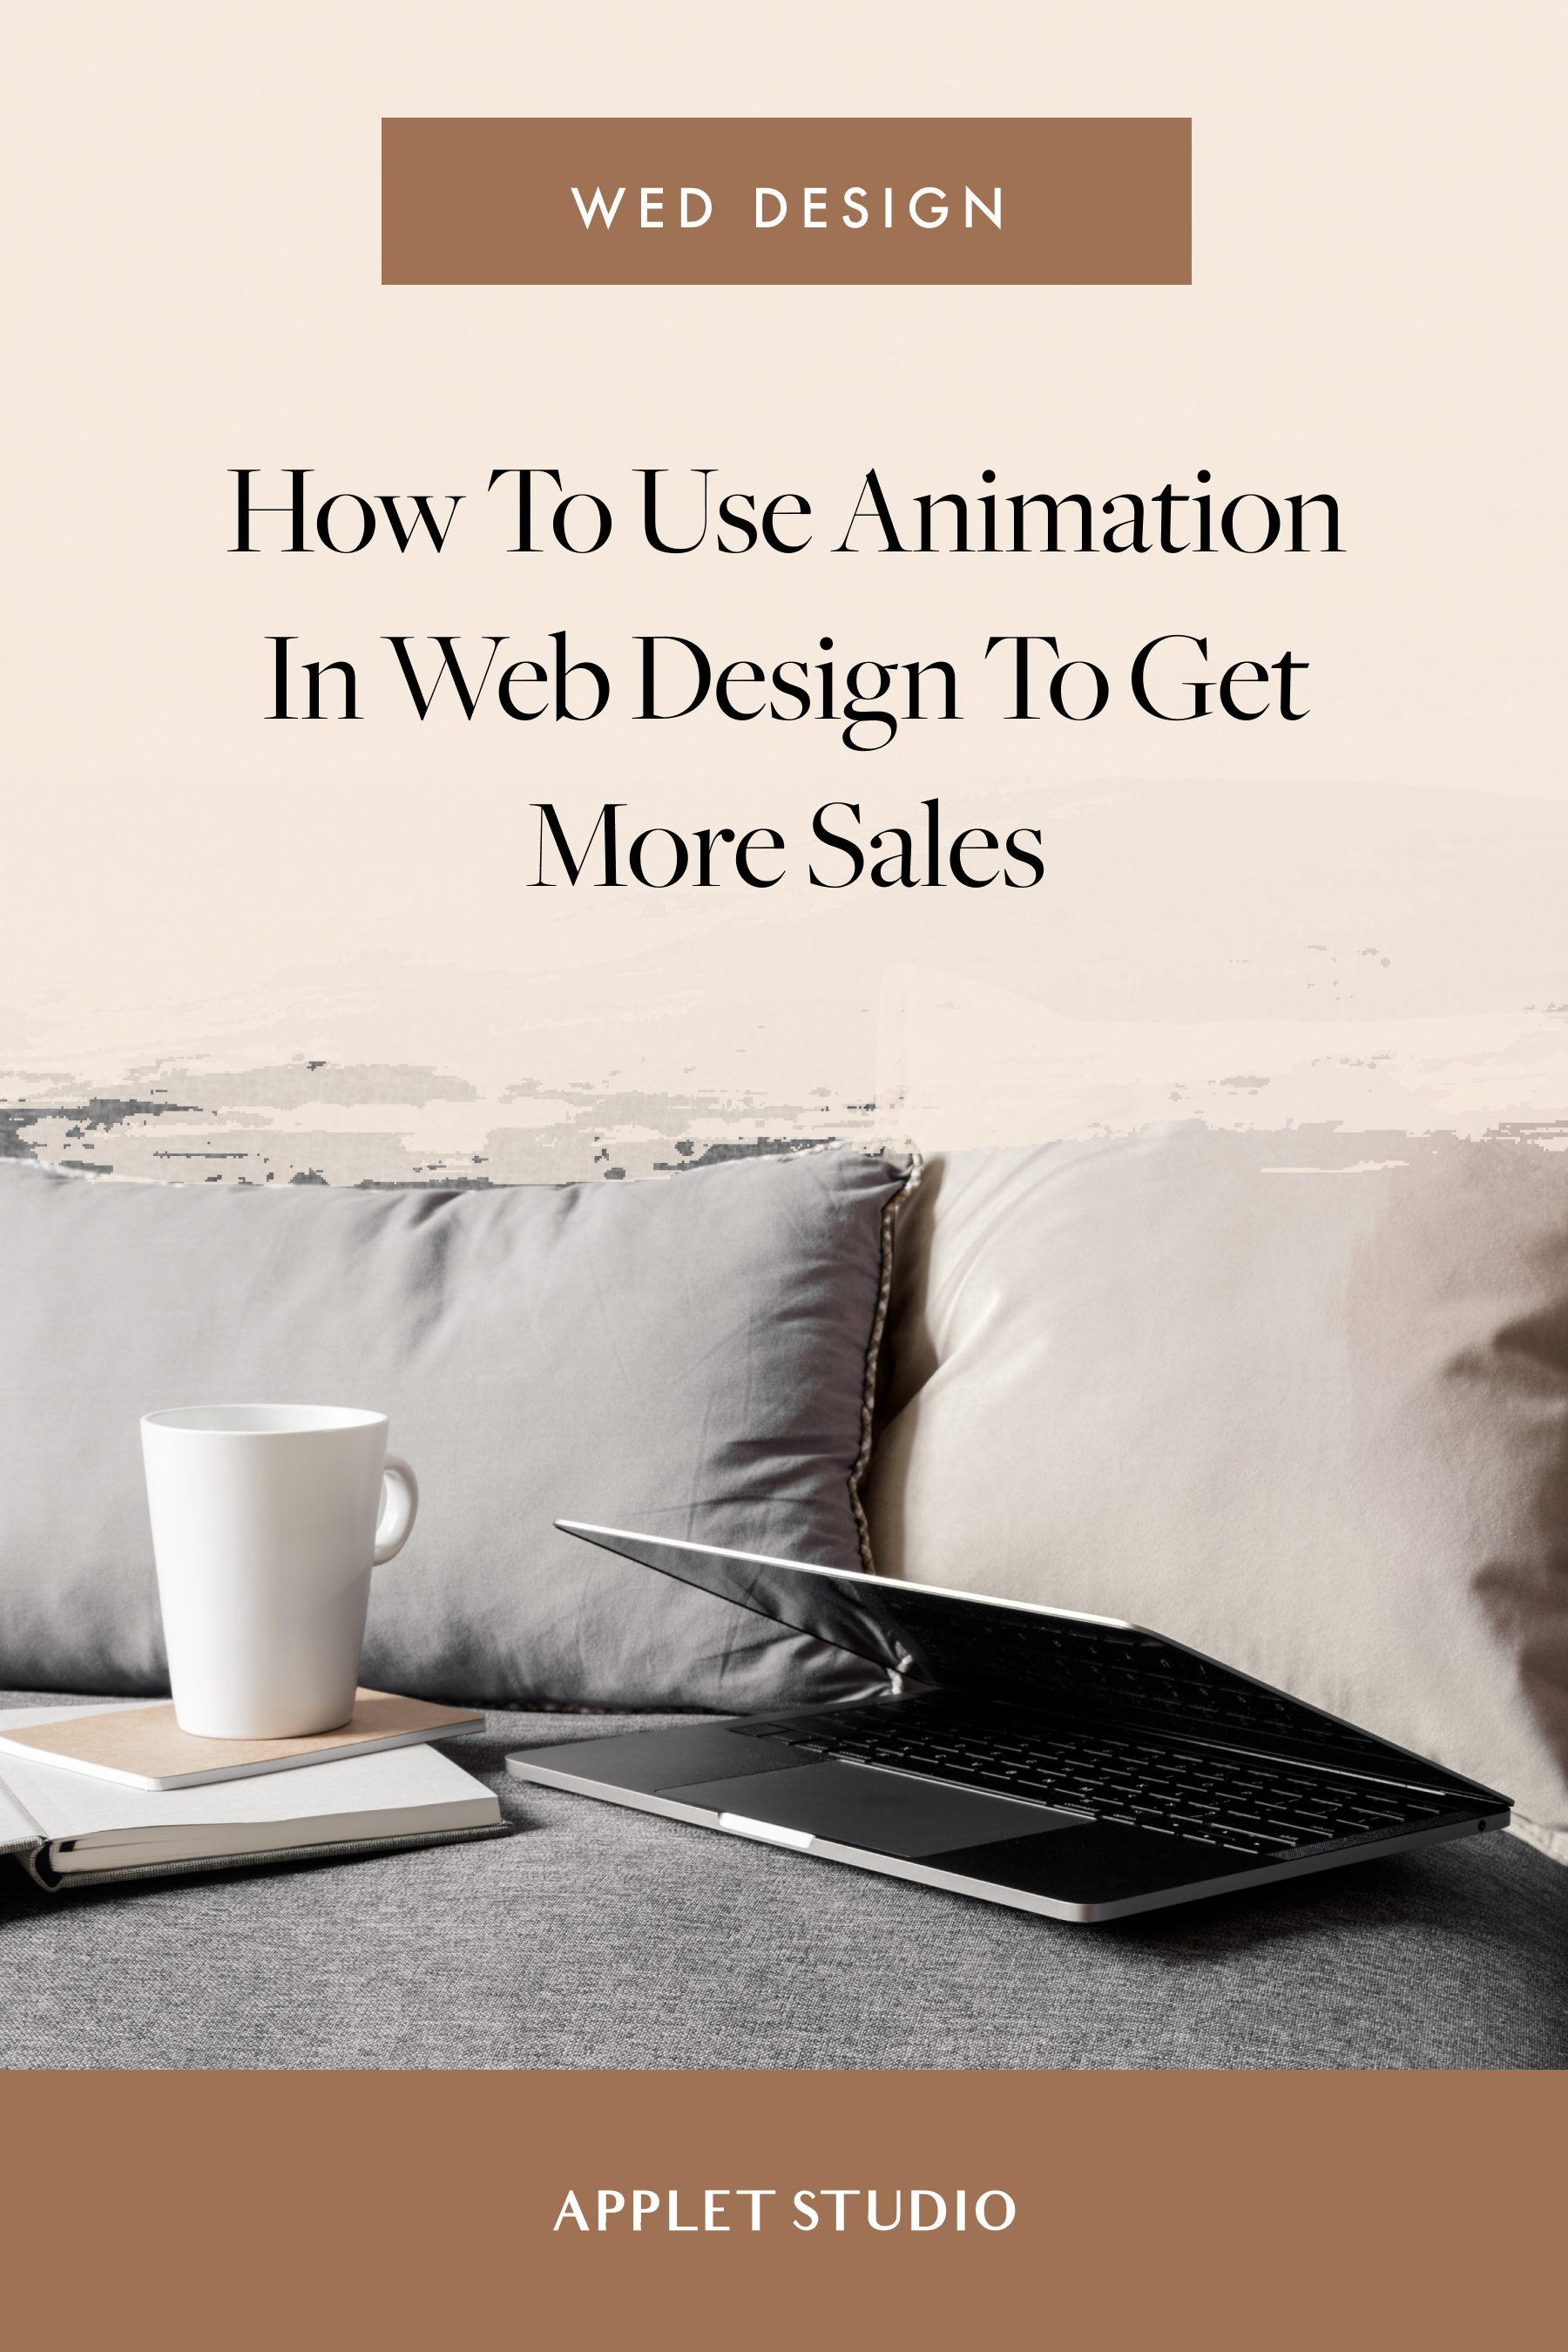 How To Use Animation In Web Design To Sell Get More Sales Applet Studio In 2020 Web Design Marketing Strategy Studio Marketing